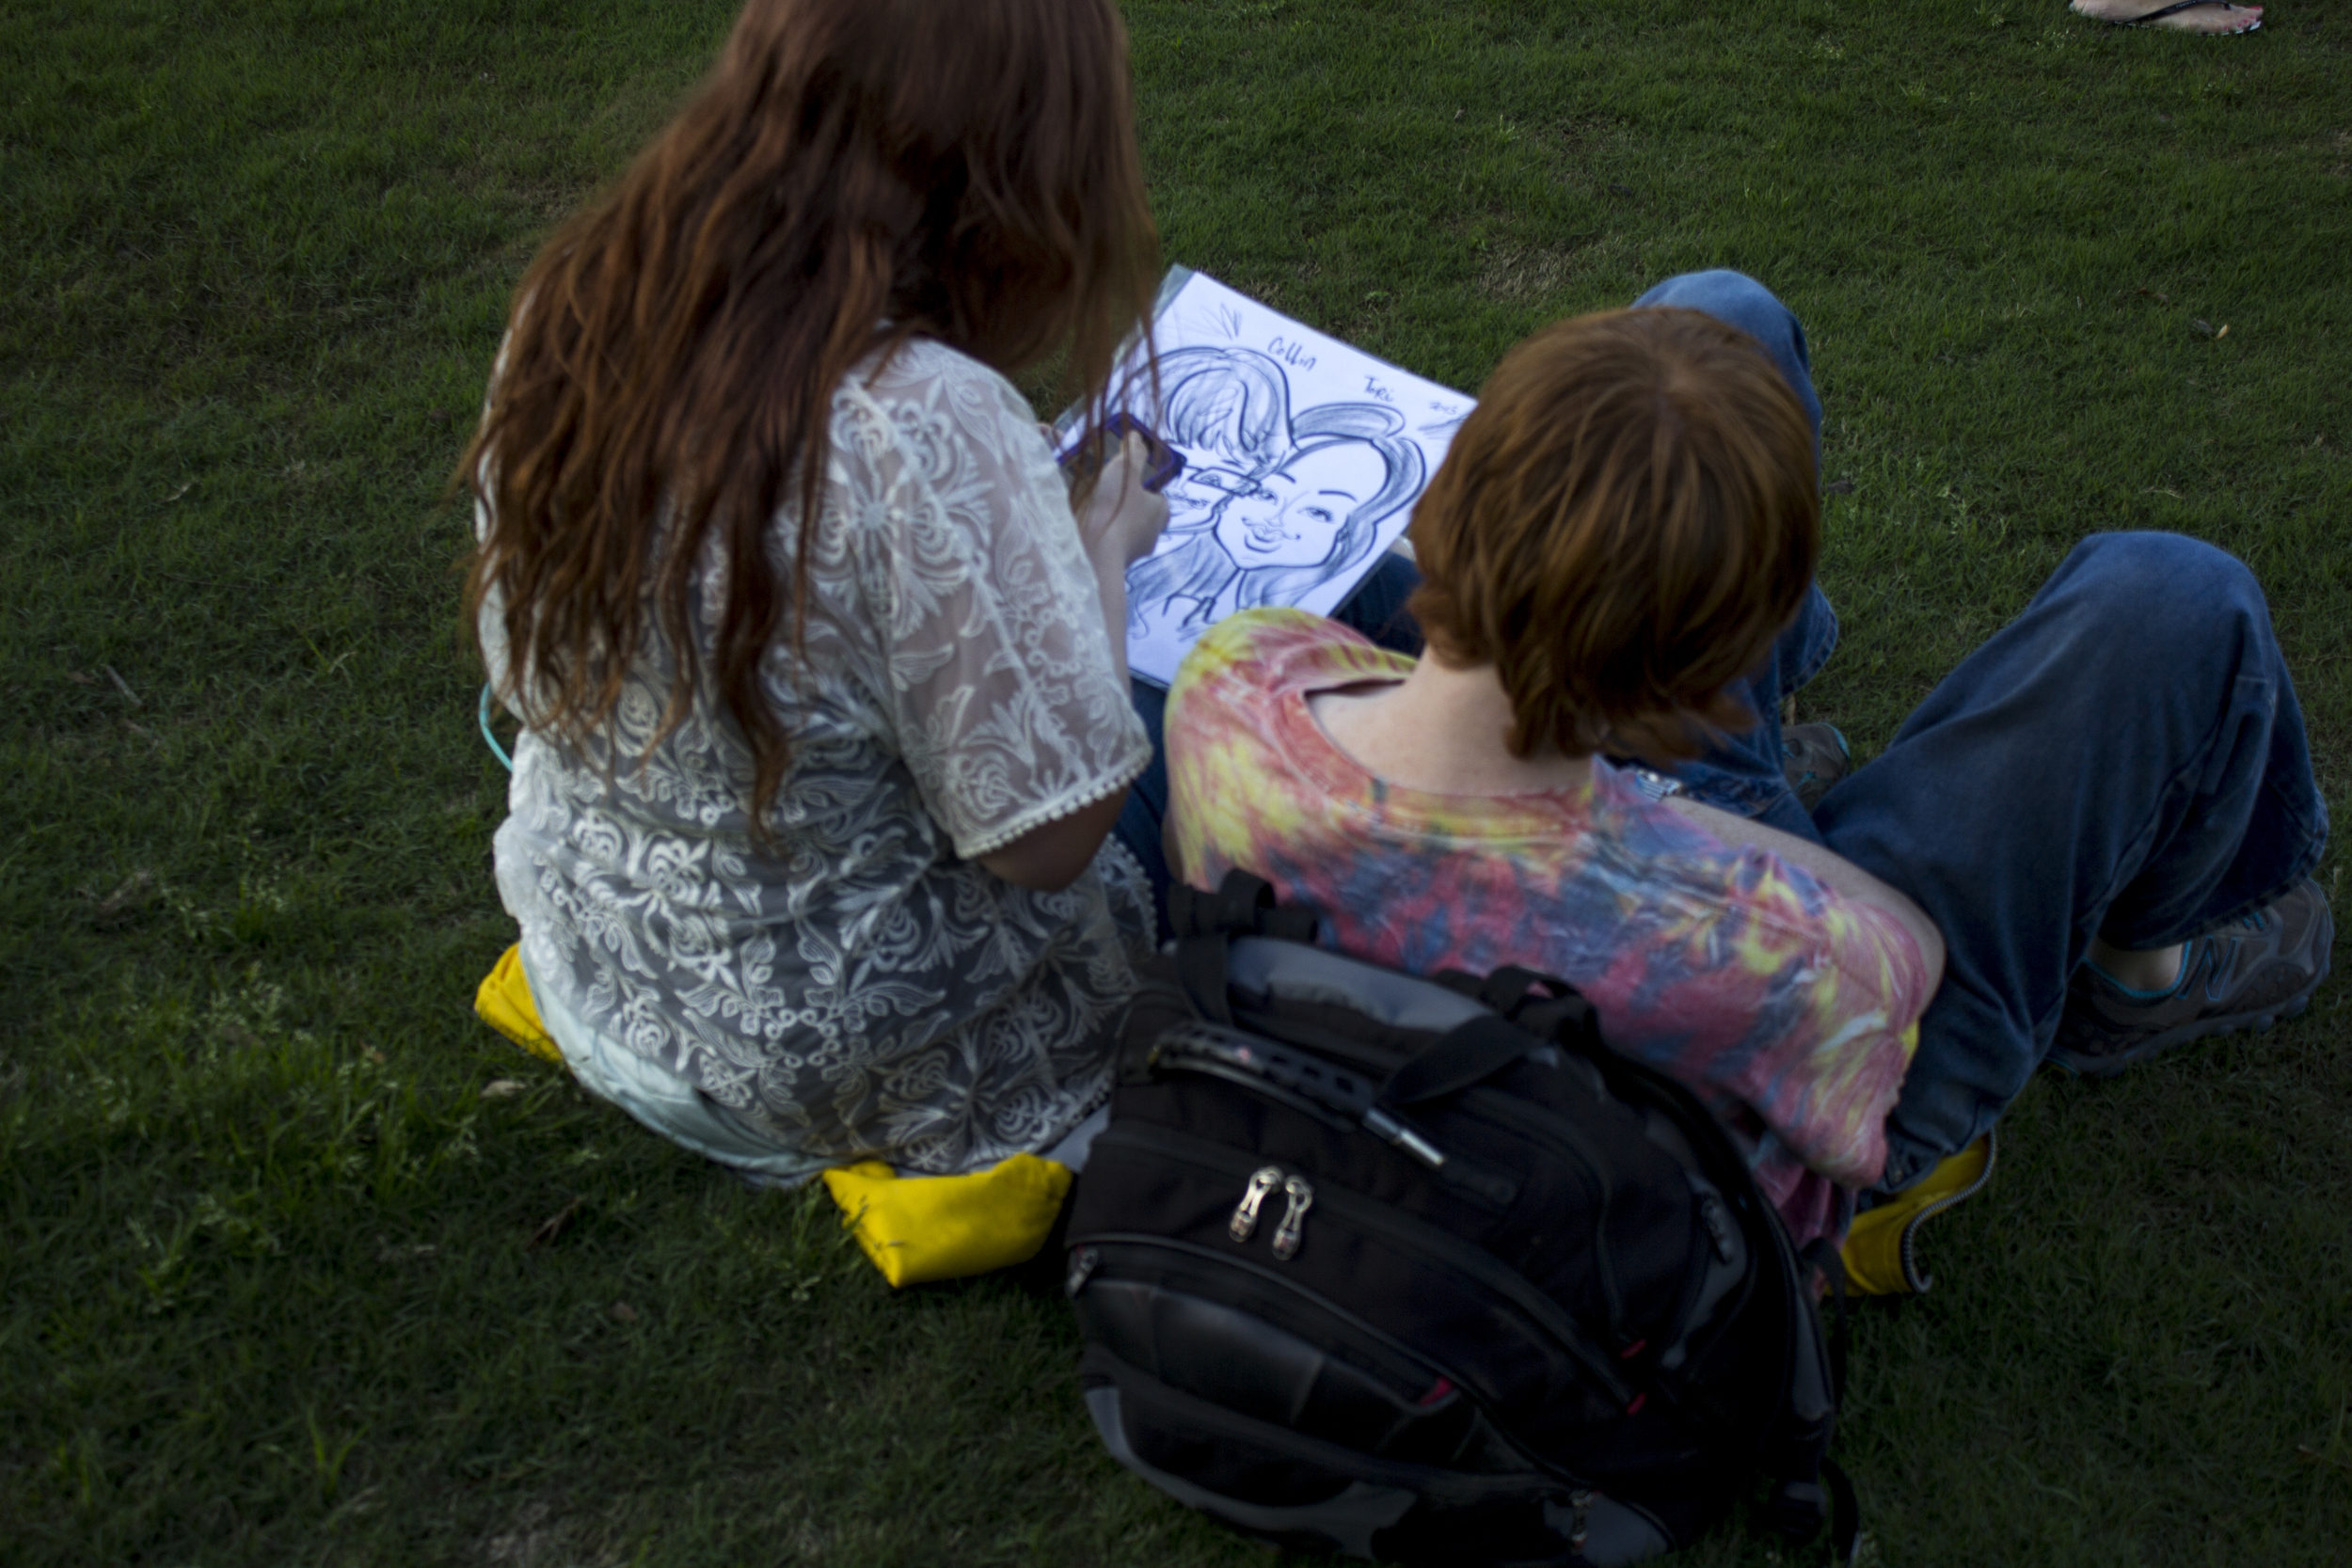 These two students enjoyed sitting in the grass after getting their own caricature drawn.